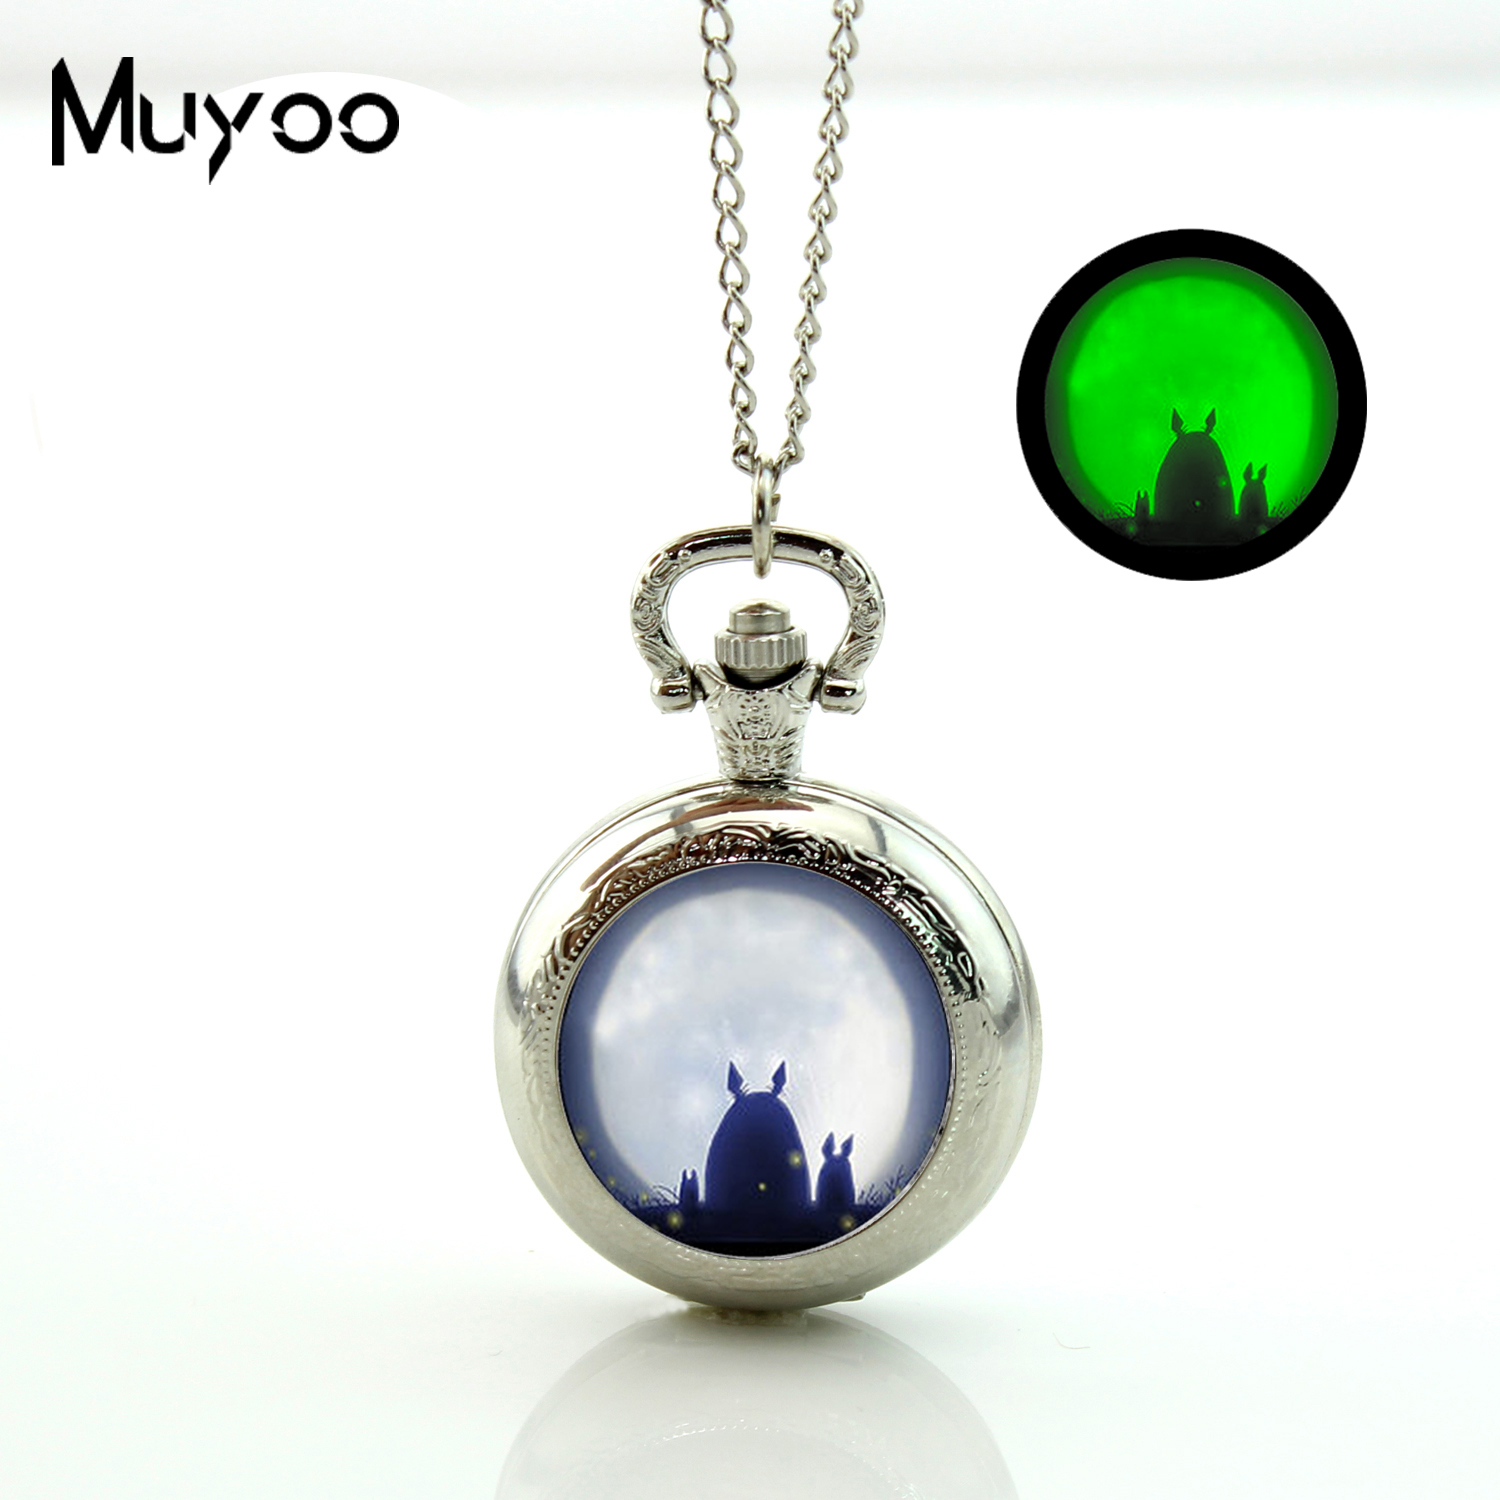 2017 New My Neighbor Totoro Pocket watch Pendant Necklace Japanese Anime Satsuki and Mei Glowing in the Dark Jewelry Gifts